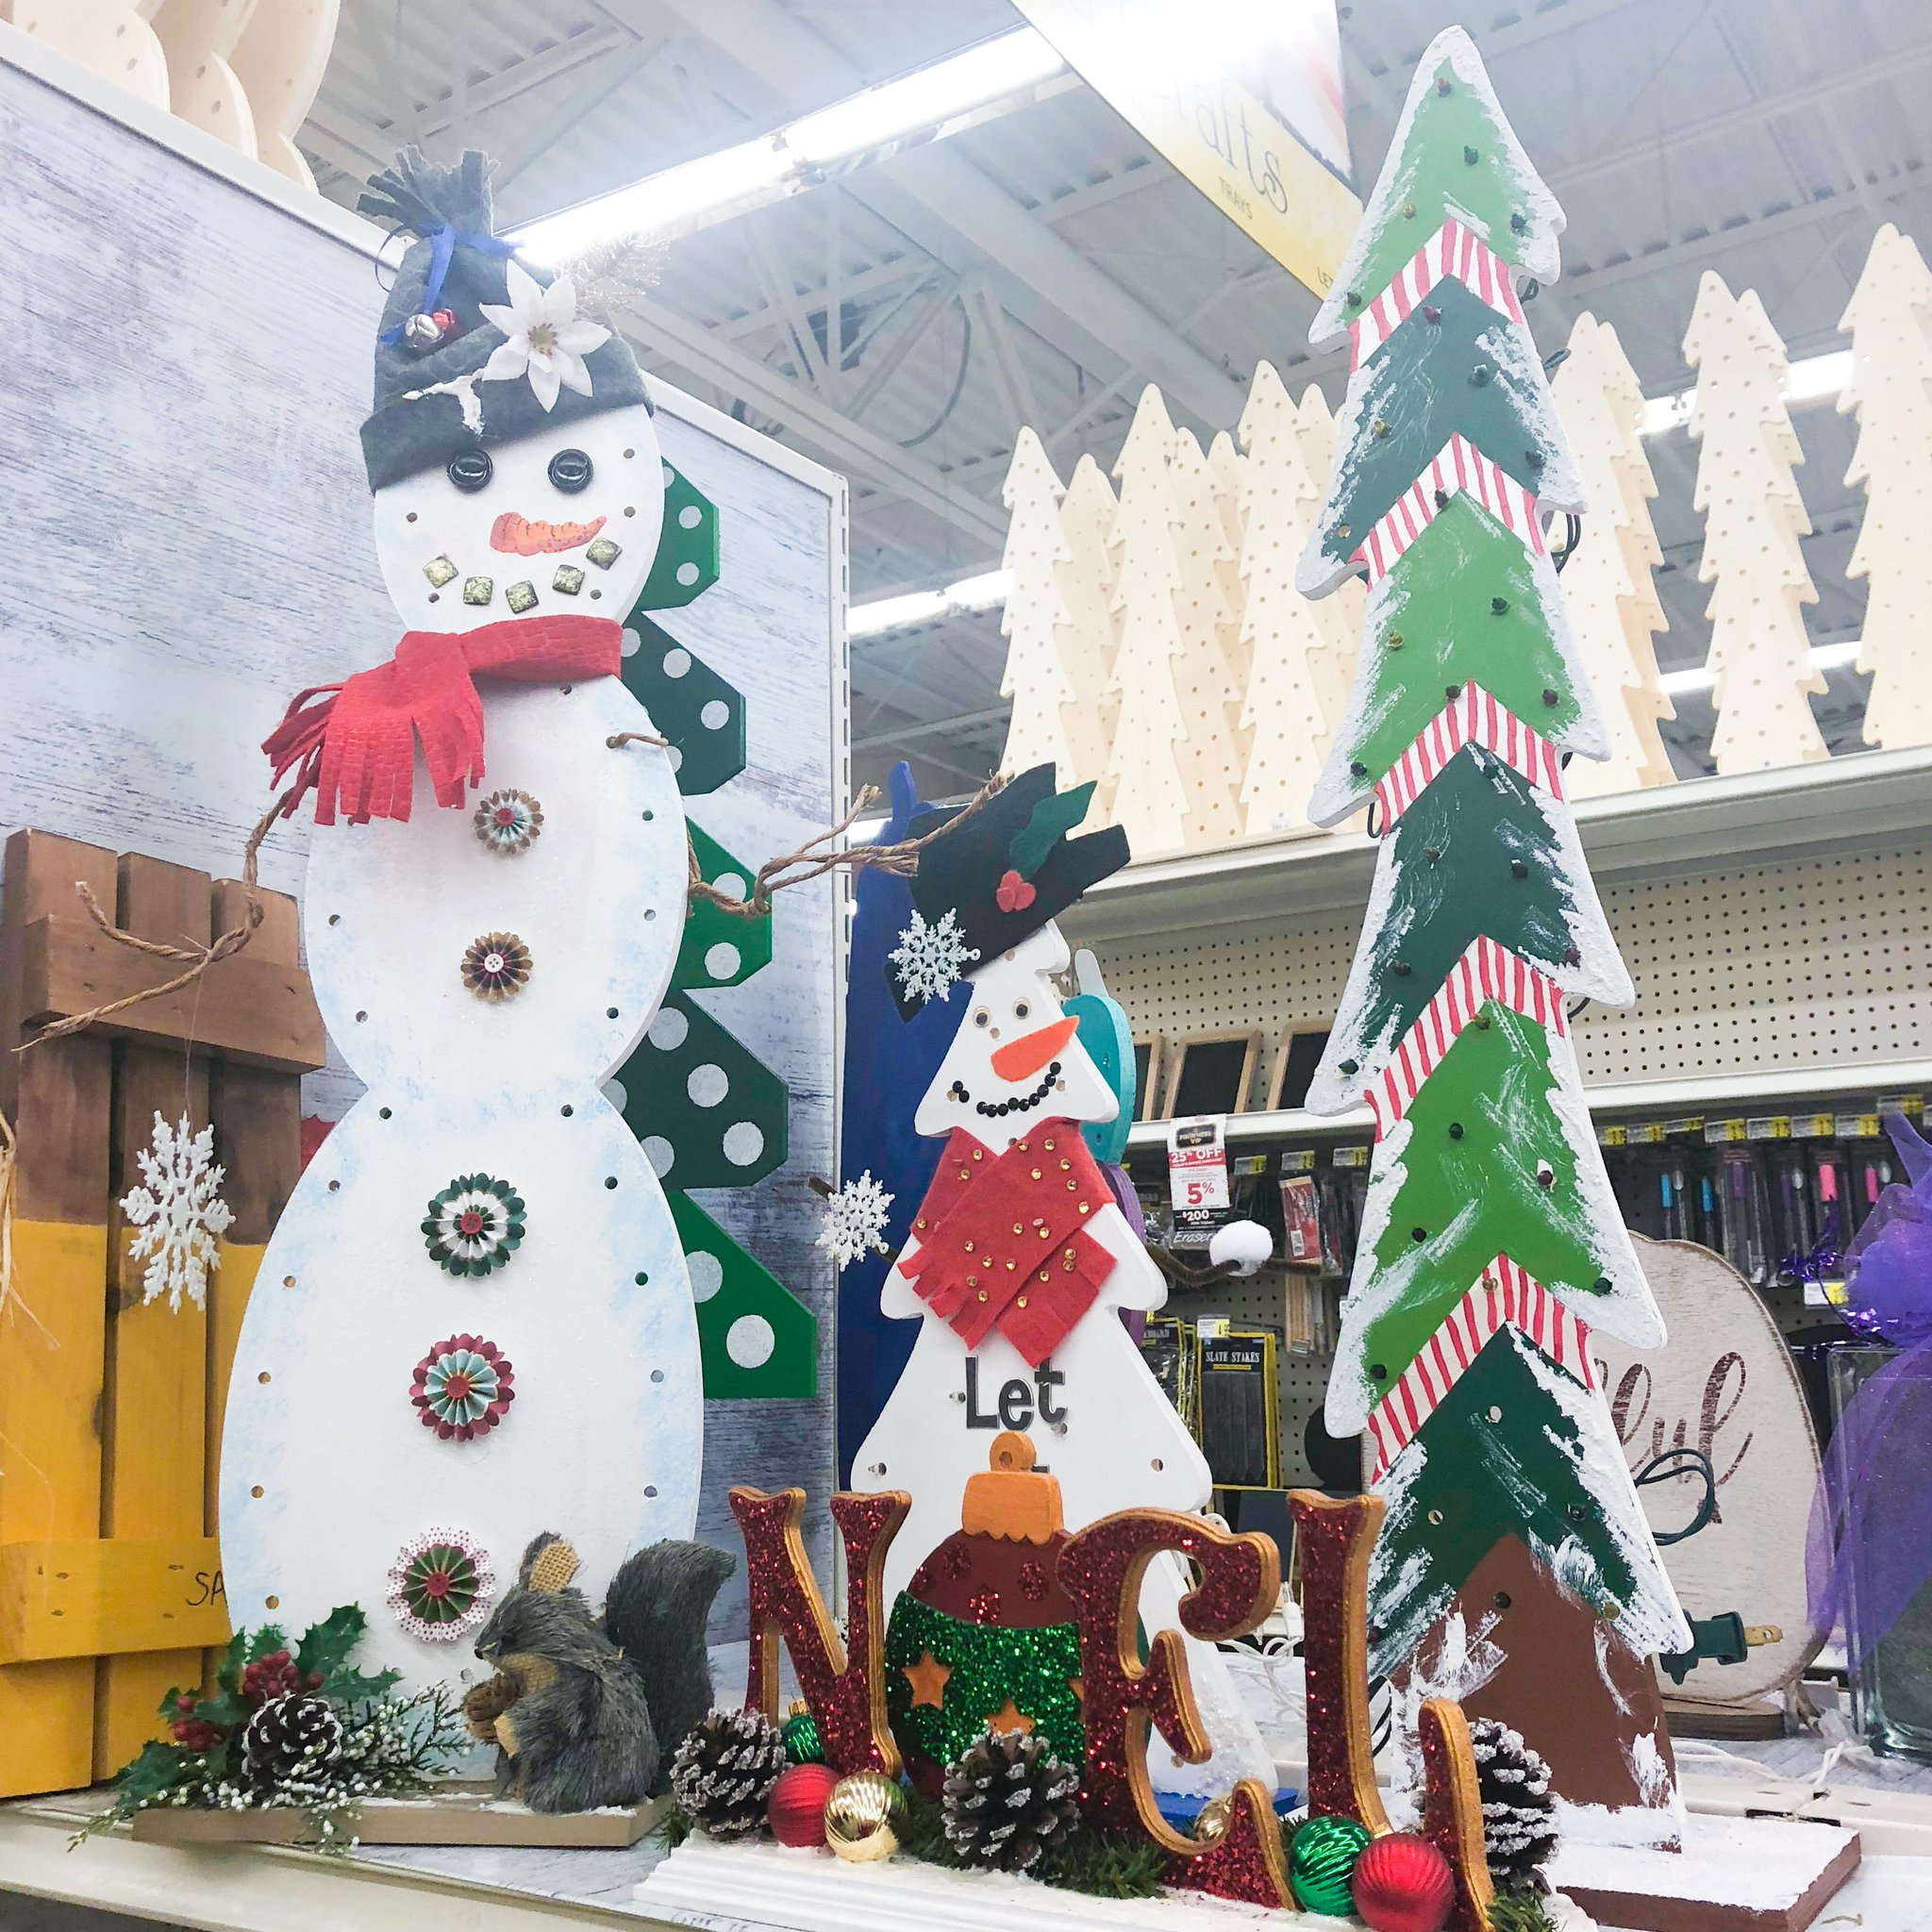 A C Moore On Twitter Diy Your Holiday Get Wood Shapes And Craftable Holiday Signs At Acmoore Then Make Them Festive Like The Floral Designers In Our Turnersvillenj Store Find A Store Https T Co 5v9t9ijdwz